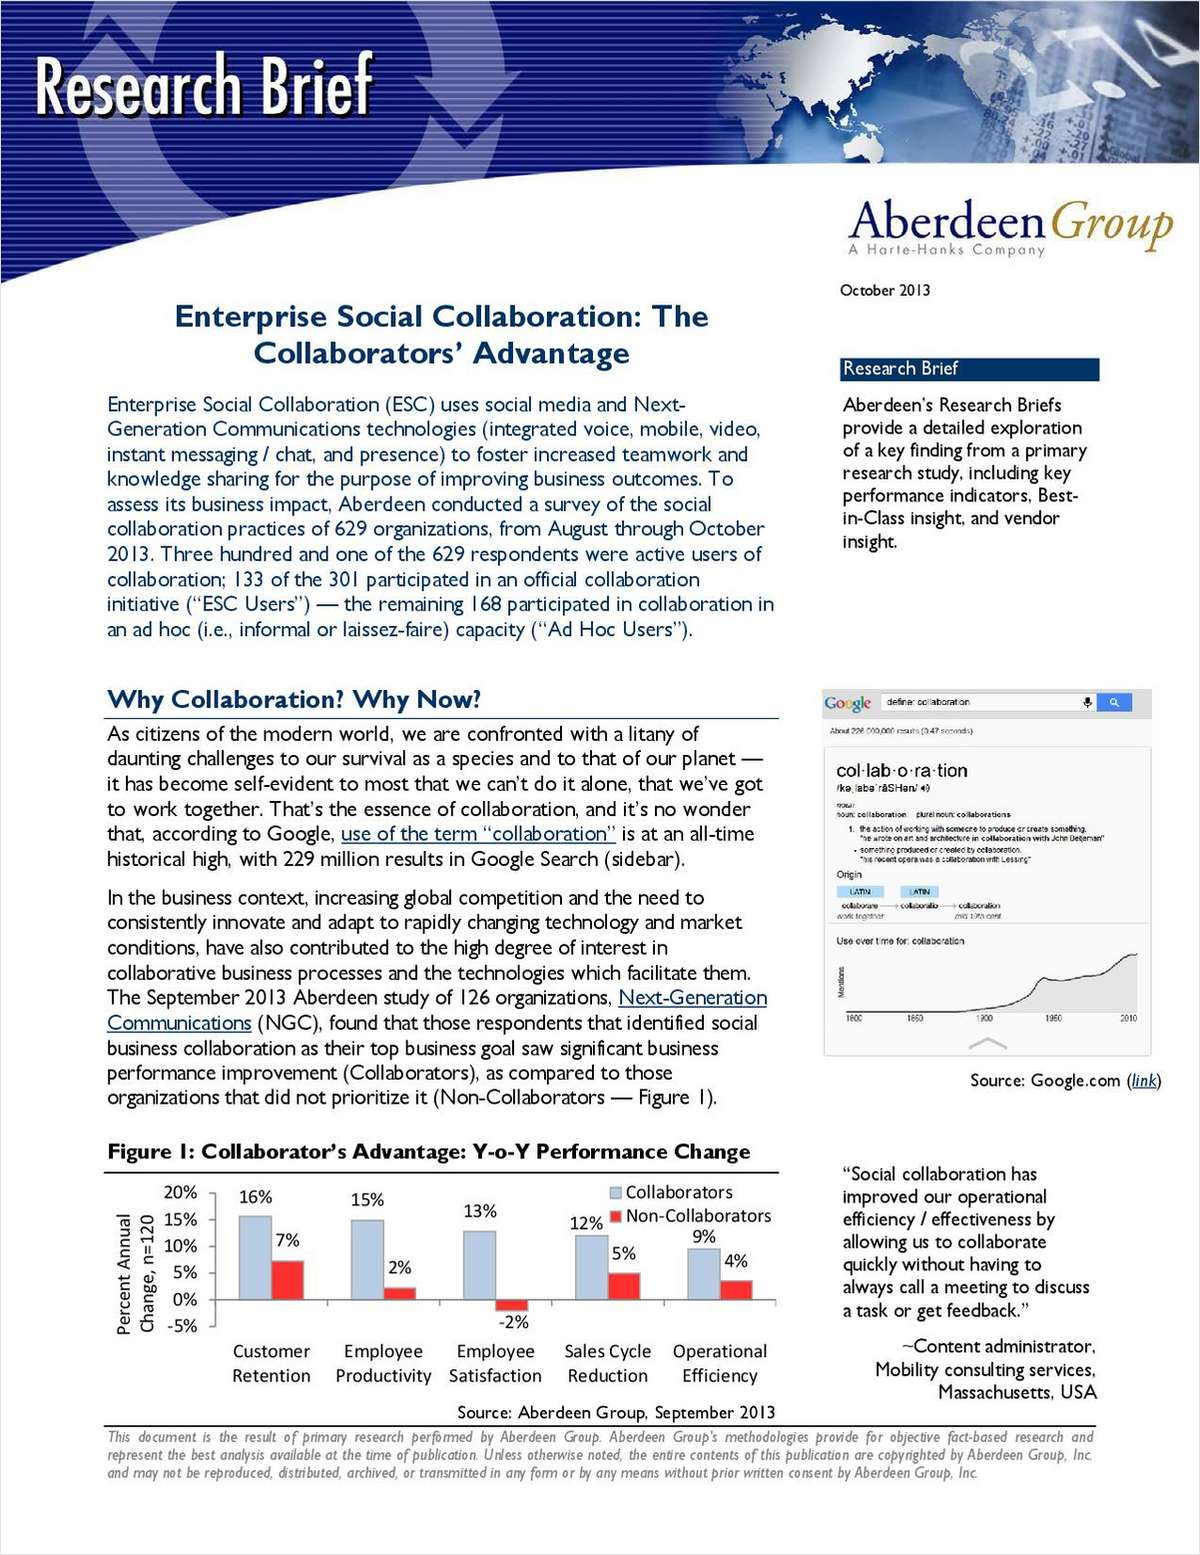 Enterprise Social Collaboration: The Collaborators' Advantage